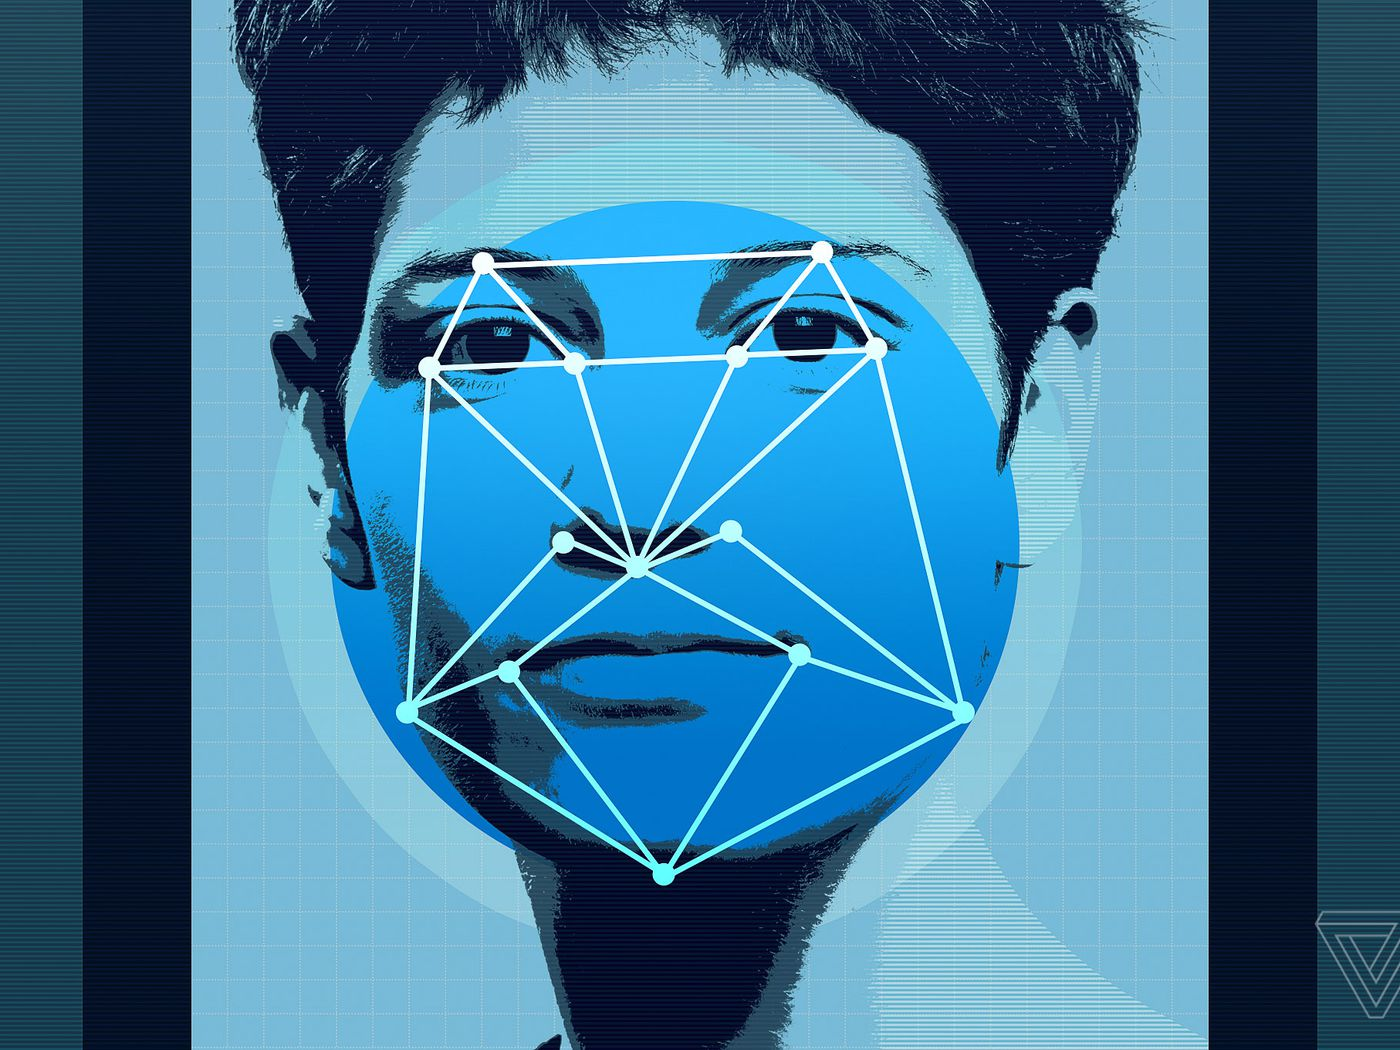 Amazon's facial recognition matched 28 members of Congress